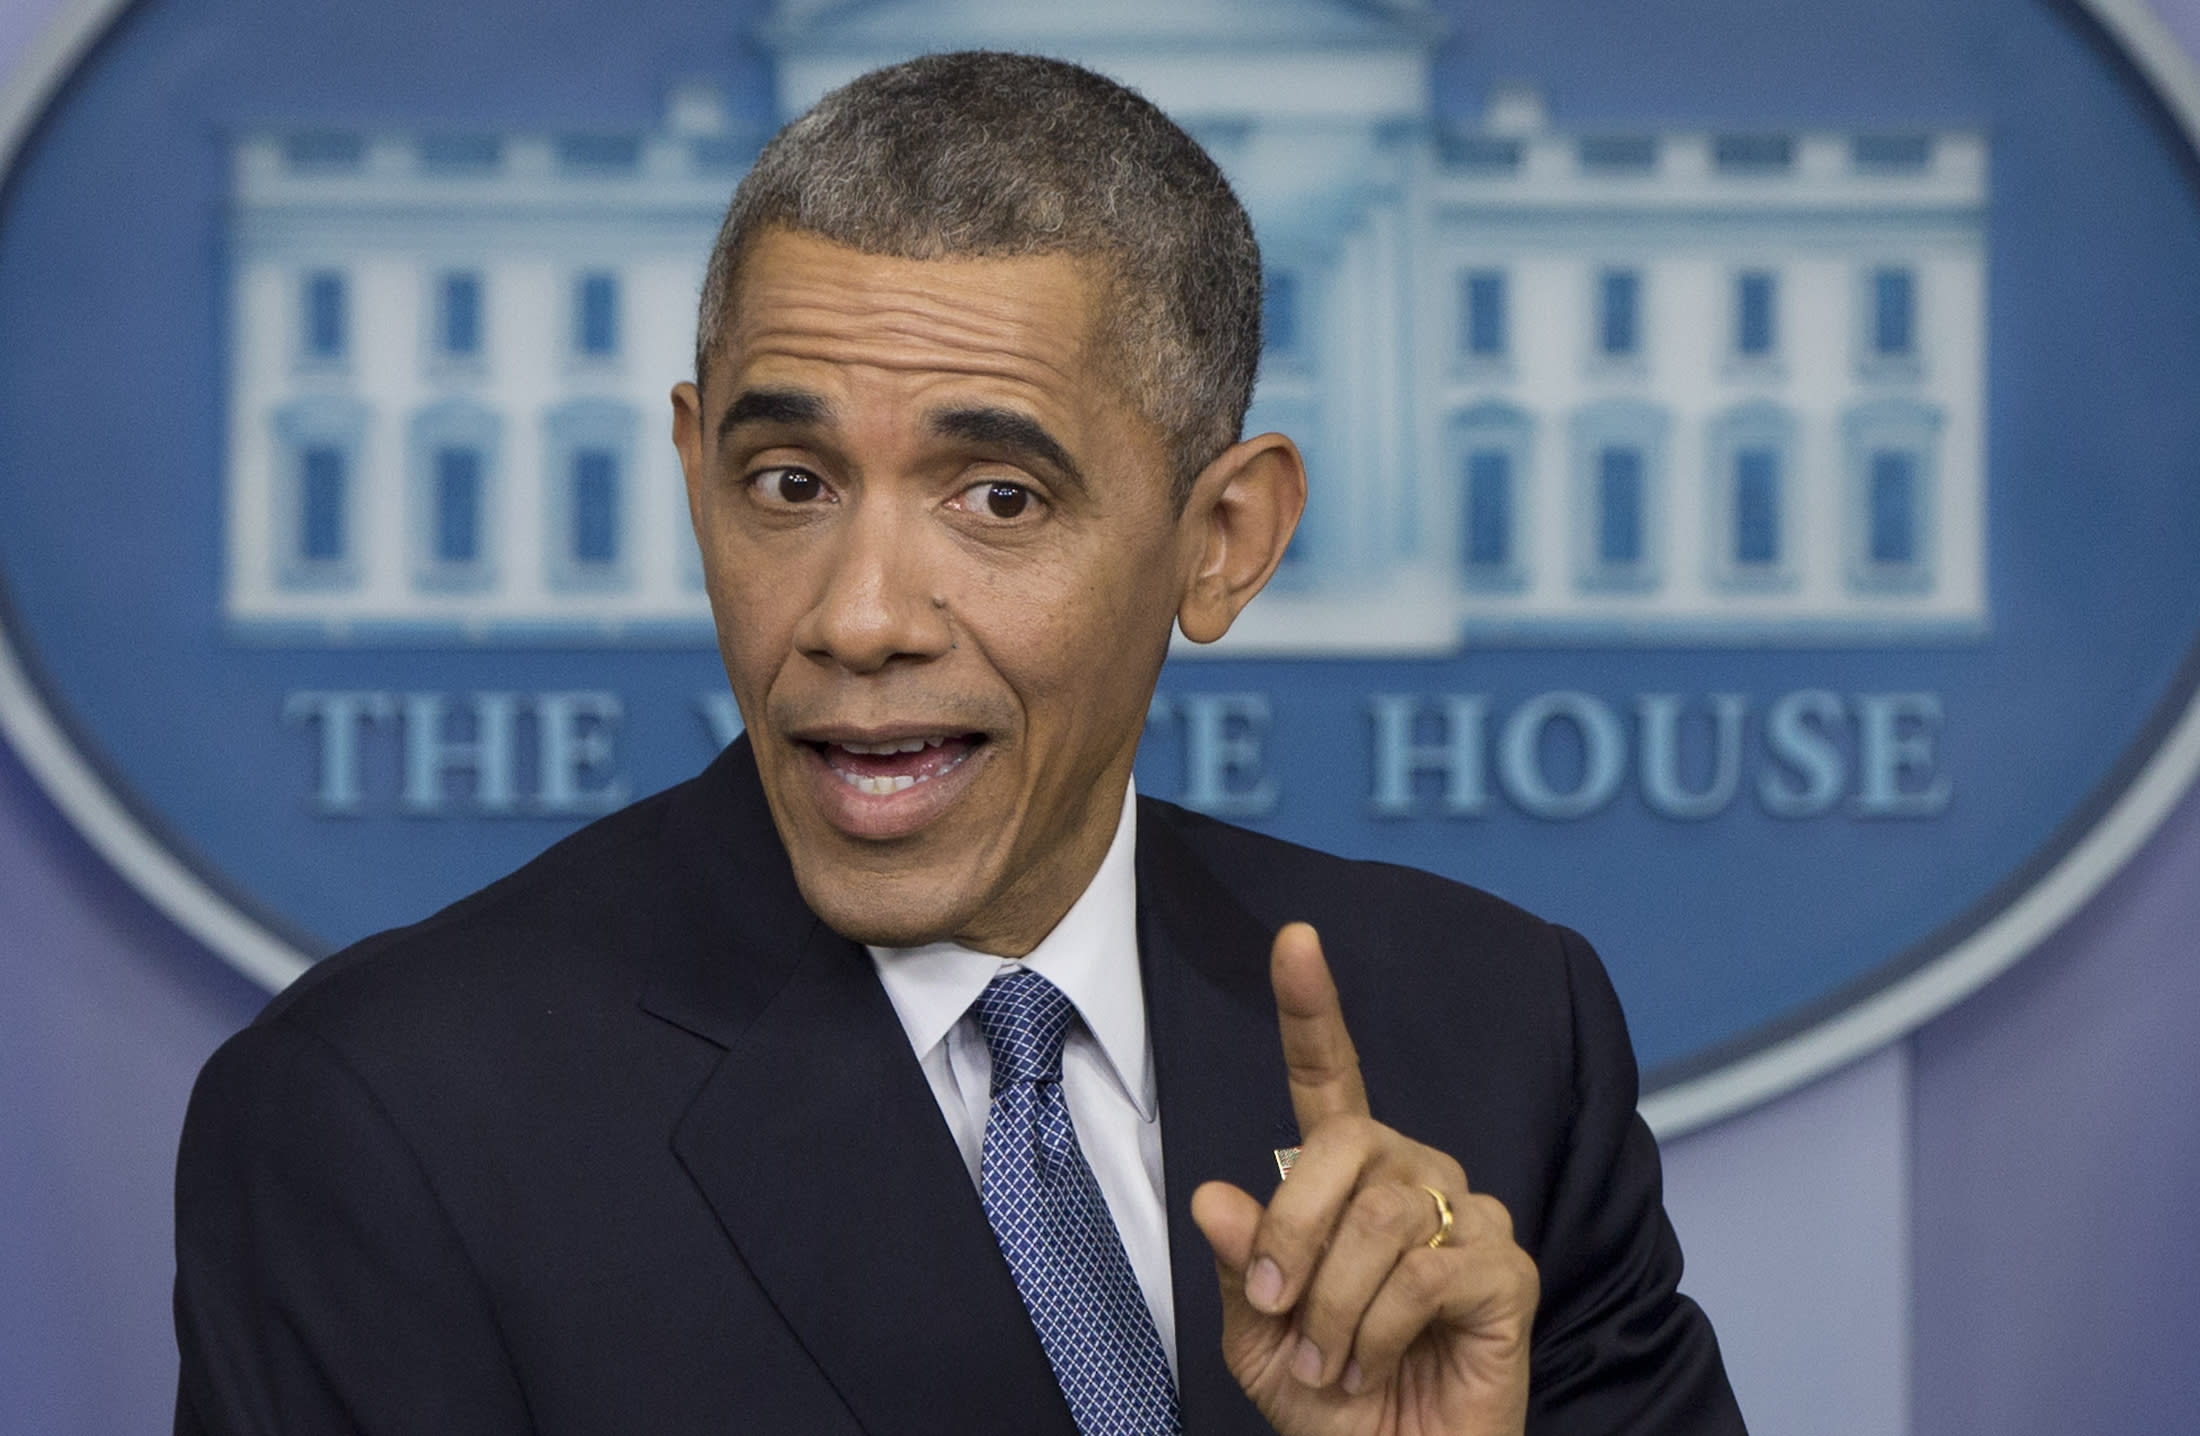 Going it alone, Obama rocked the boat in 2014